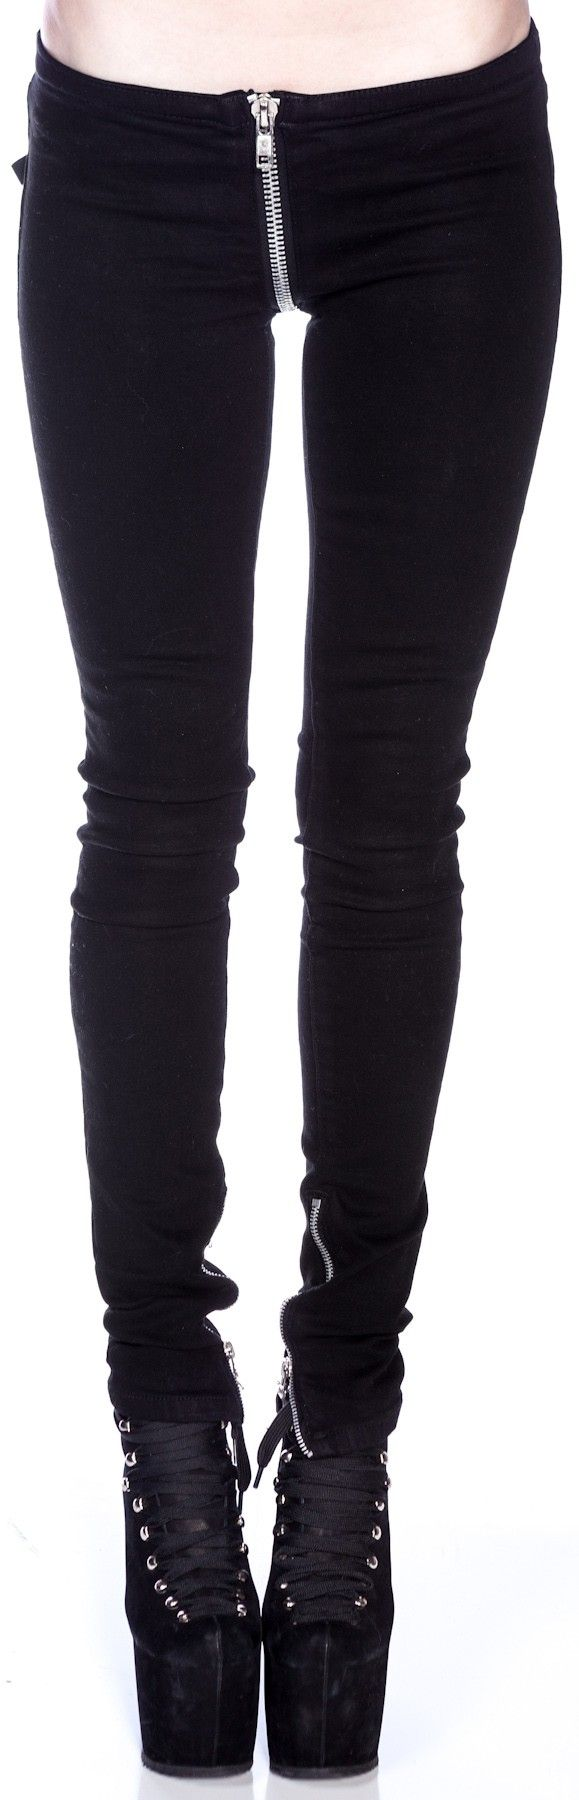 Kill City Tweek-Crack Attack Super Low Rise Stretch Twill Pants | Dolls Kill